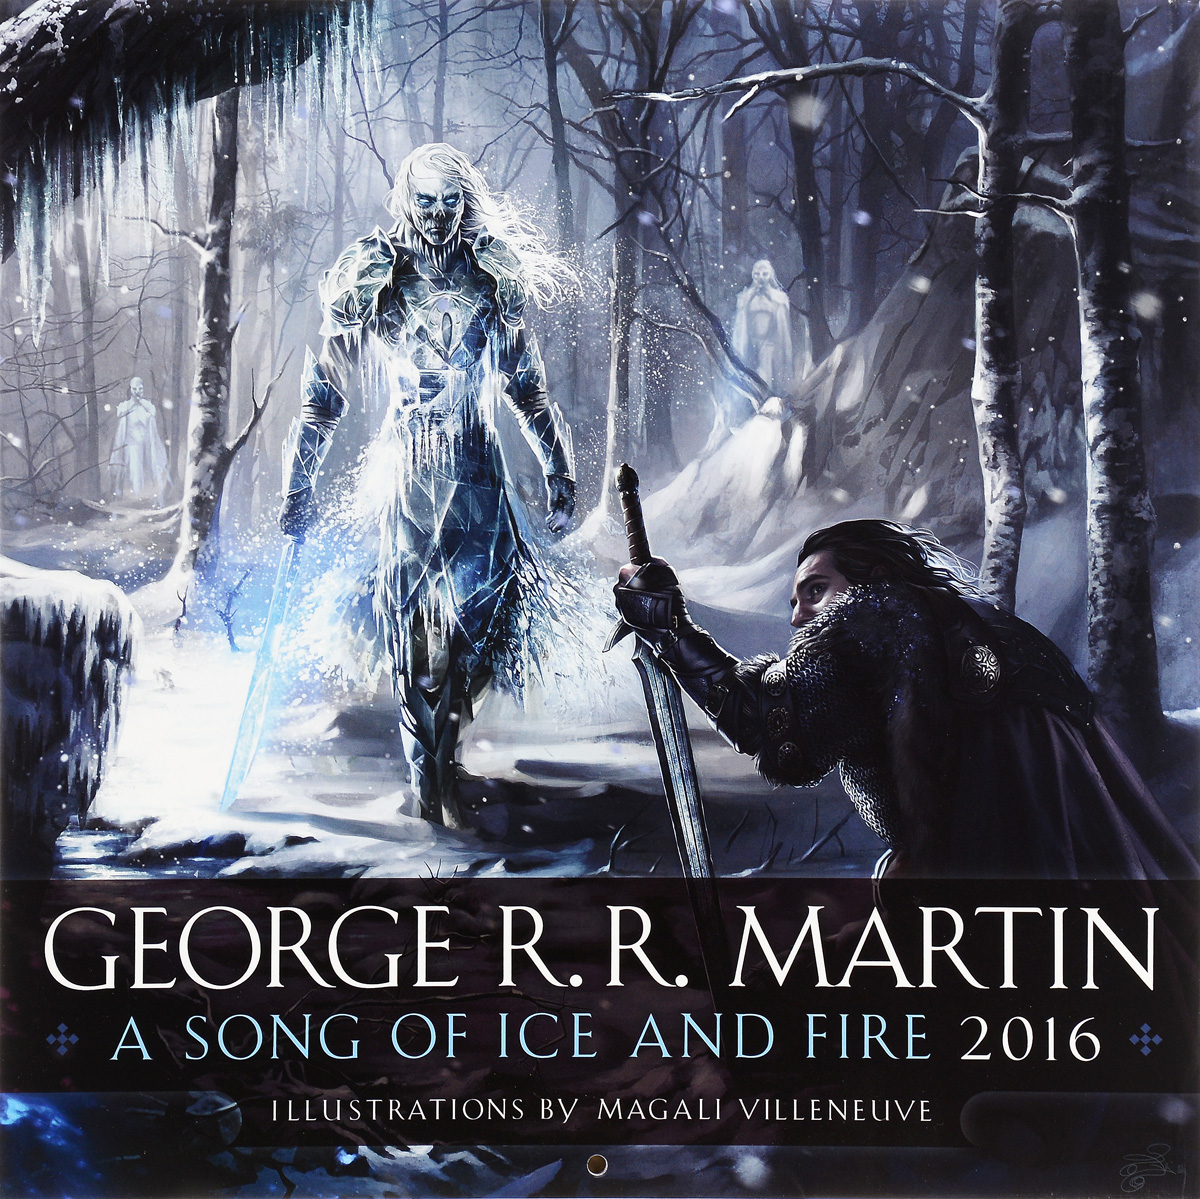 SONG OF ICE AND FIRE 2016 martin g r r dance with dragon book 5 of song of ice and fire